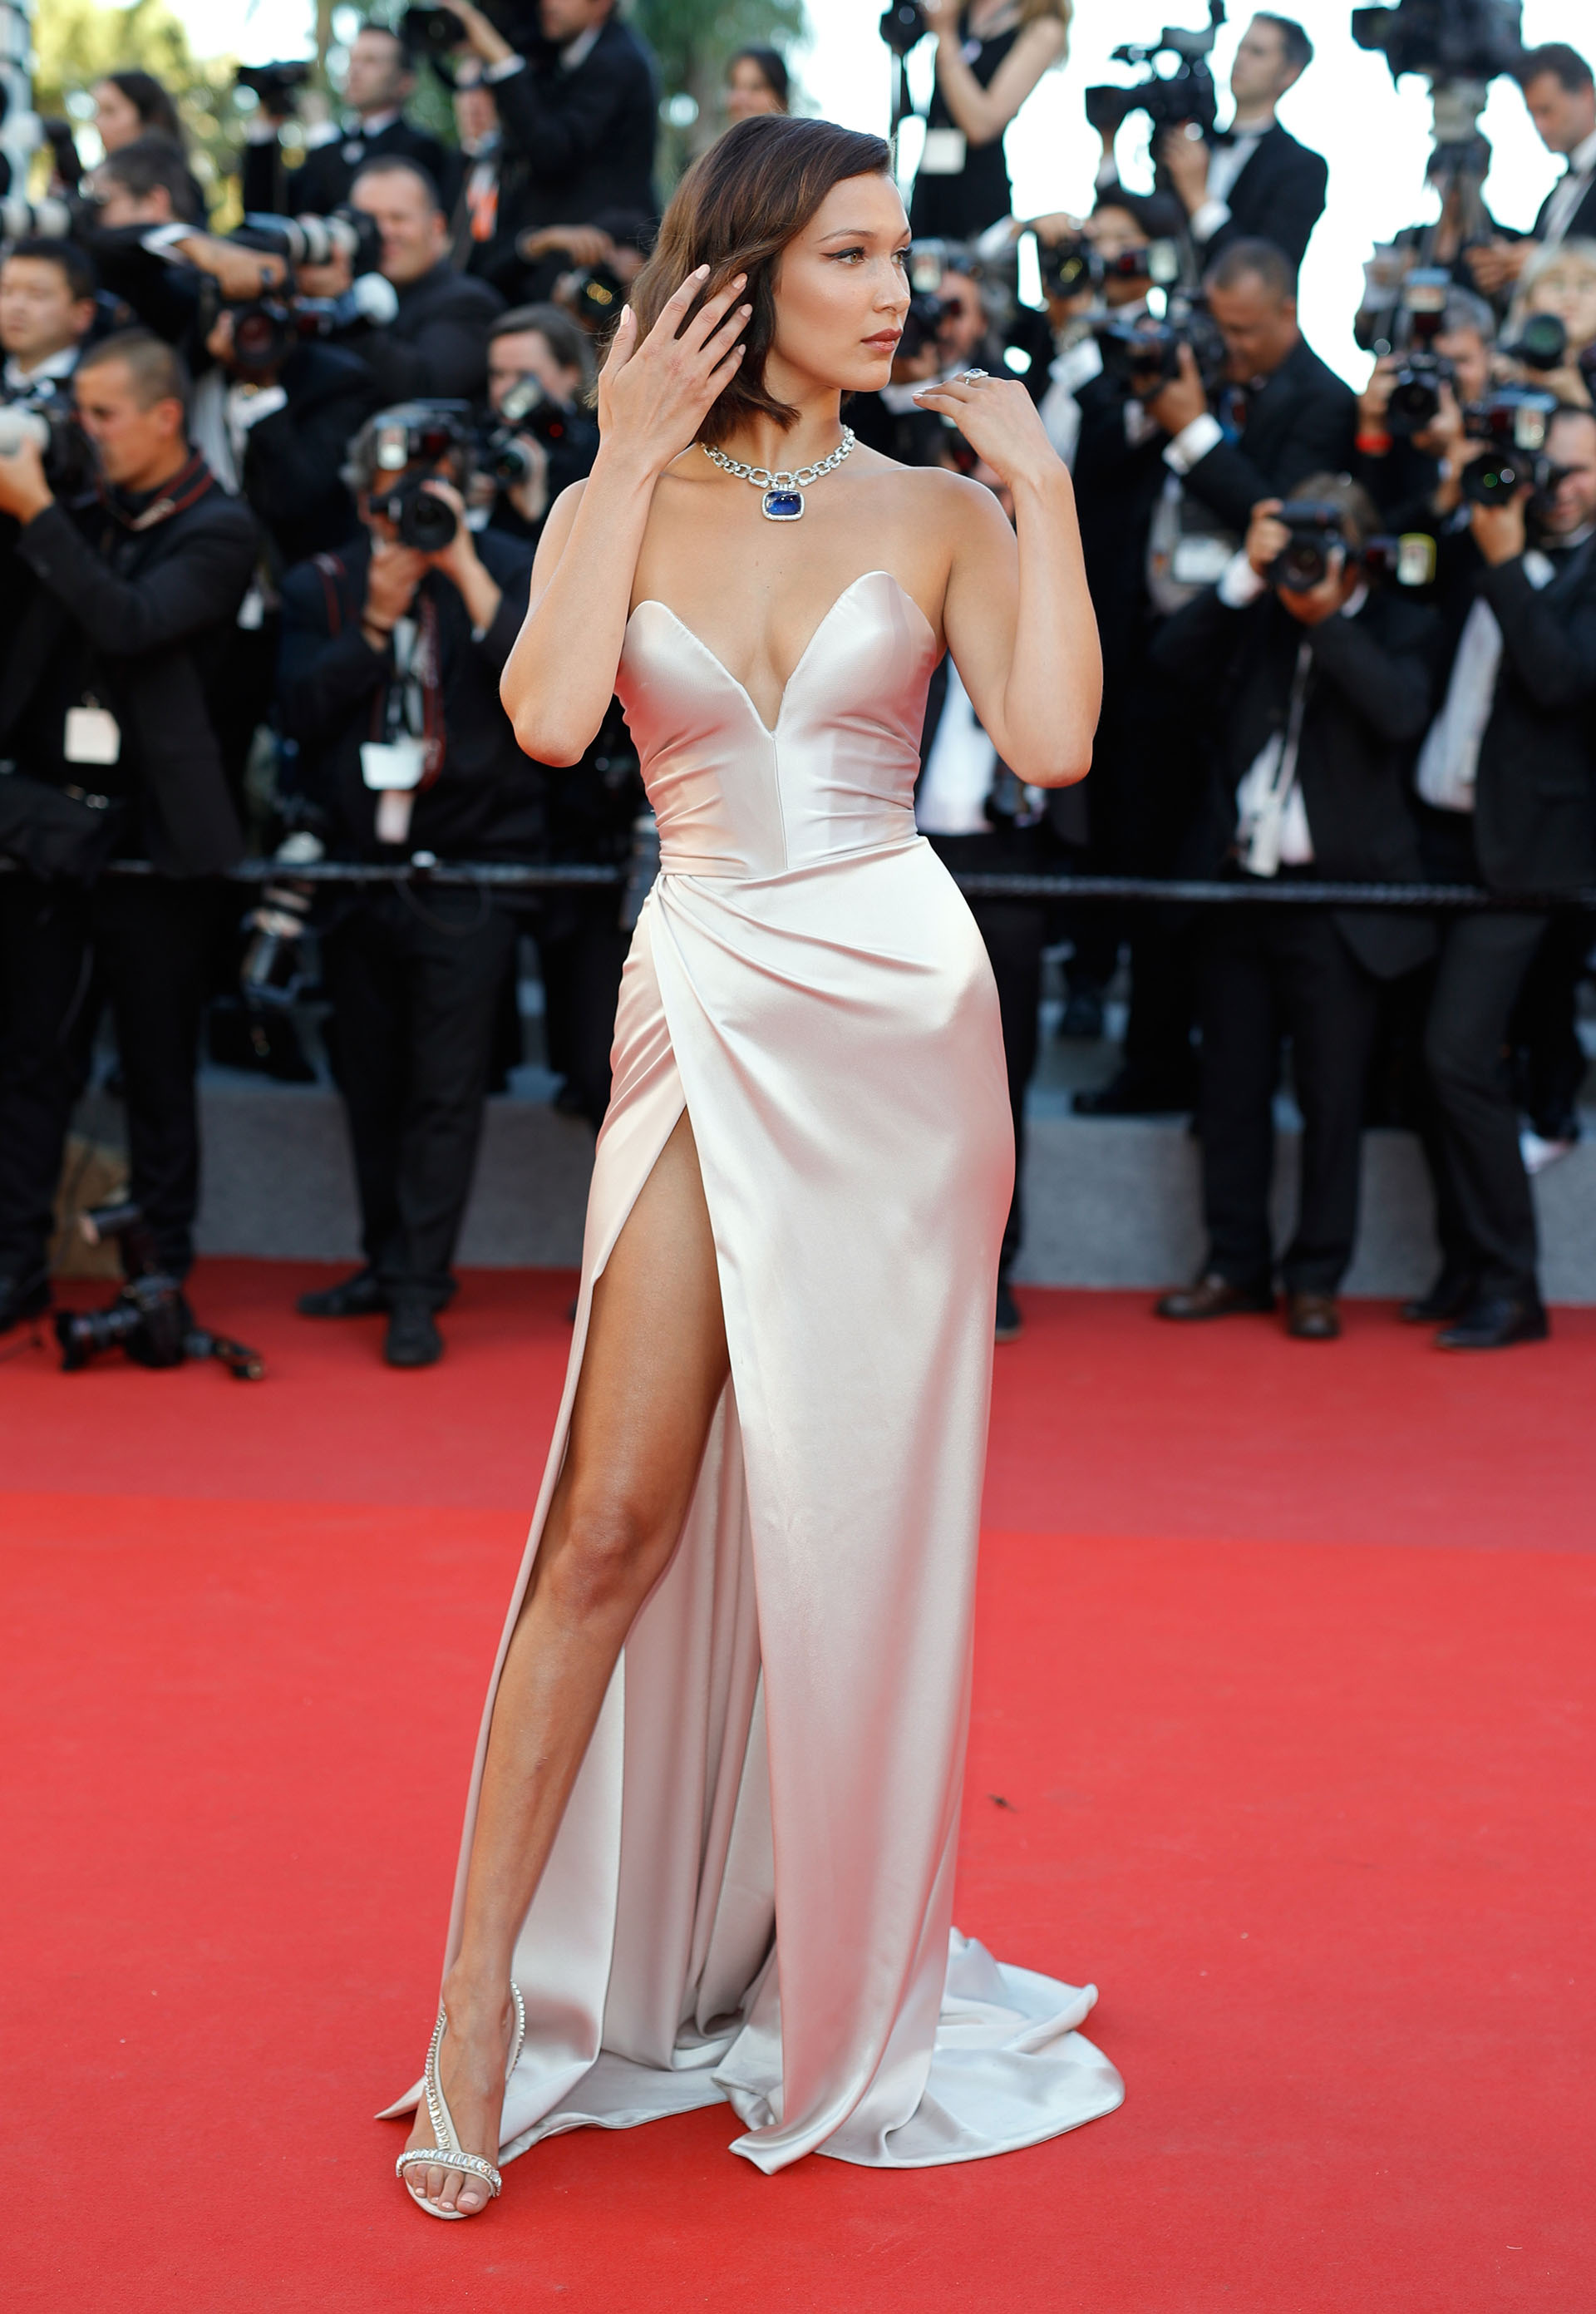 """CANNES, FRANCE - MAY 17:  Bella Hadid attends the """"Ismael's Ghosts (Les Fantomes d'Ismael)"""" screening and Opening Gala during the 70th annual Cannes Film Festival at Palais des Festivals on May 17, 2017 in Cannes, France.  (Photo by Andreas Rentz/Getty Images)"""